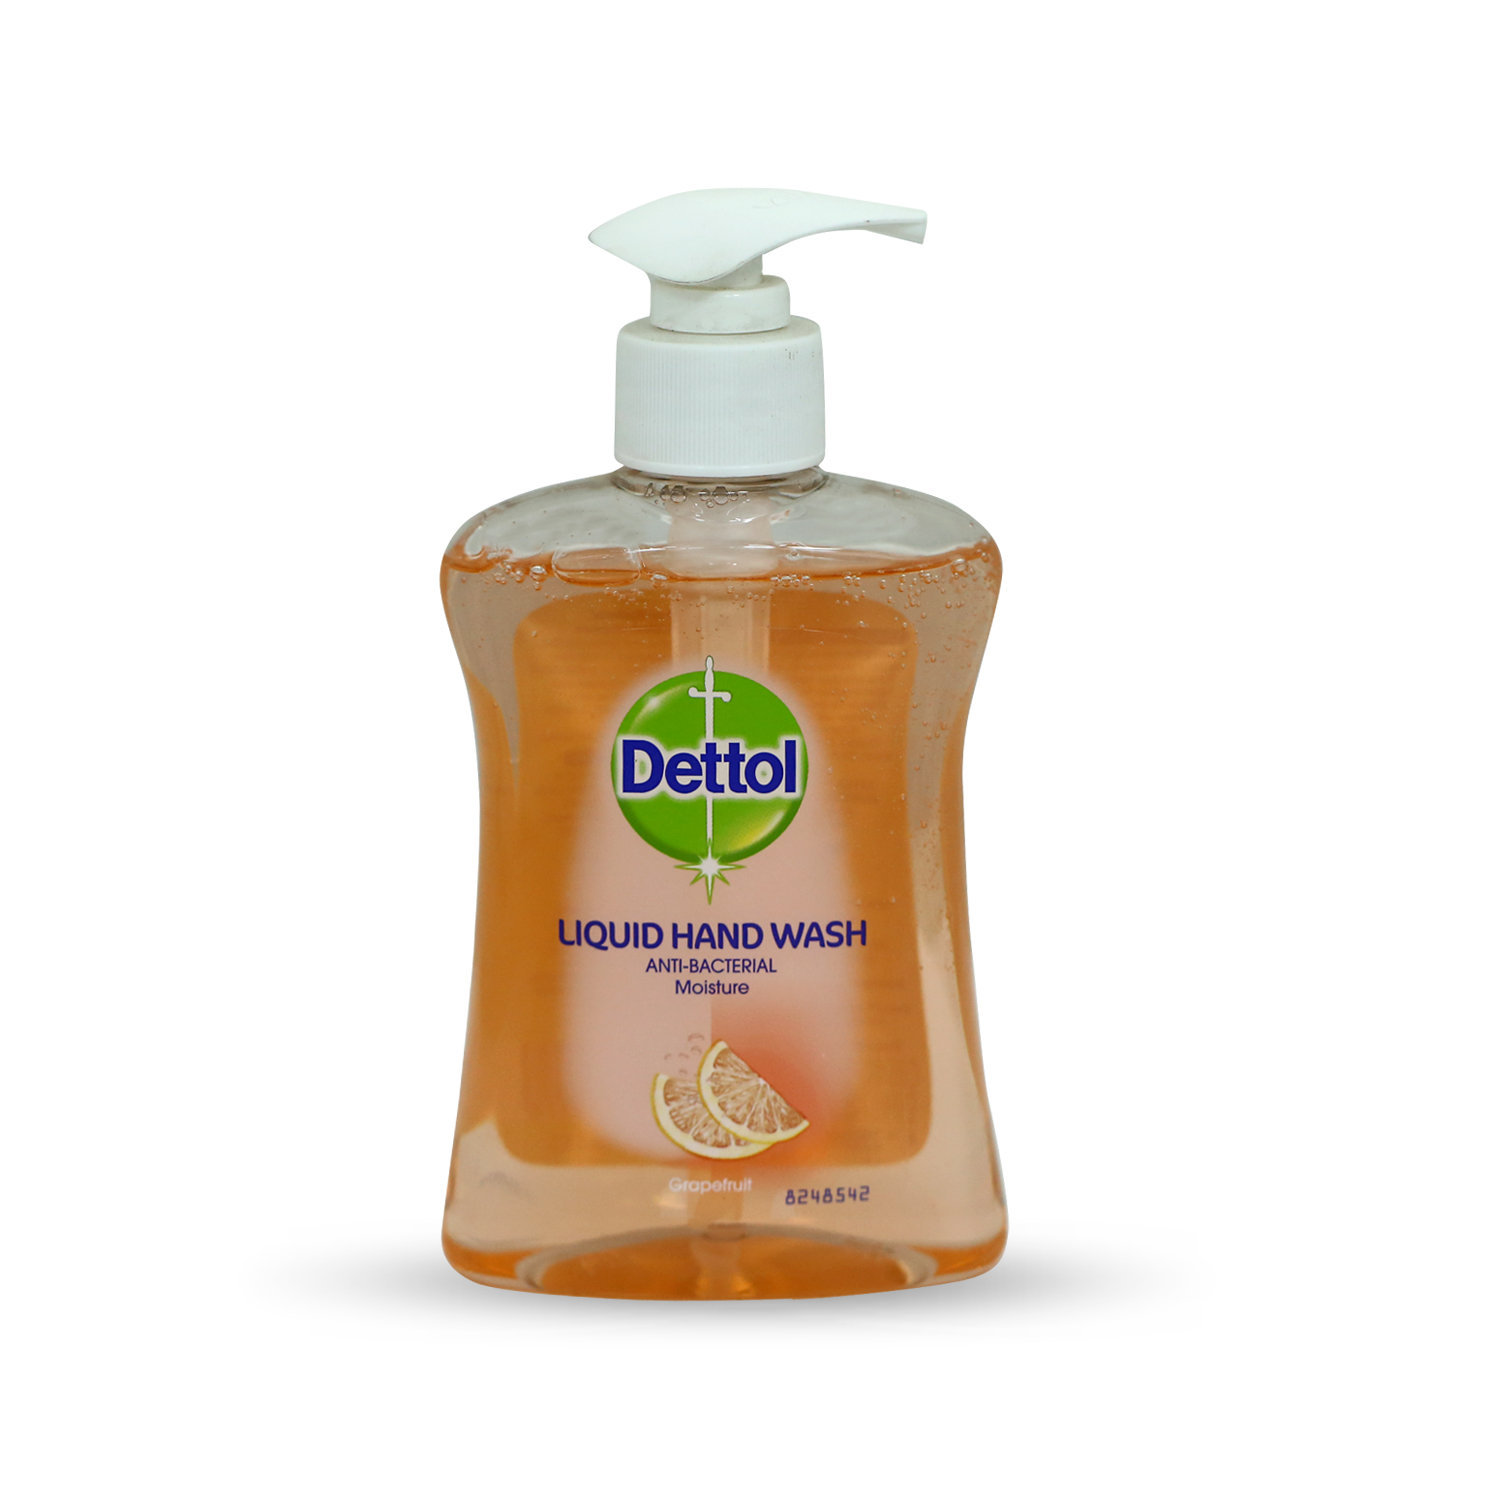 Dettol Grape Fruit Hand Wash 250ml (UK)